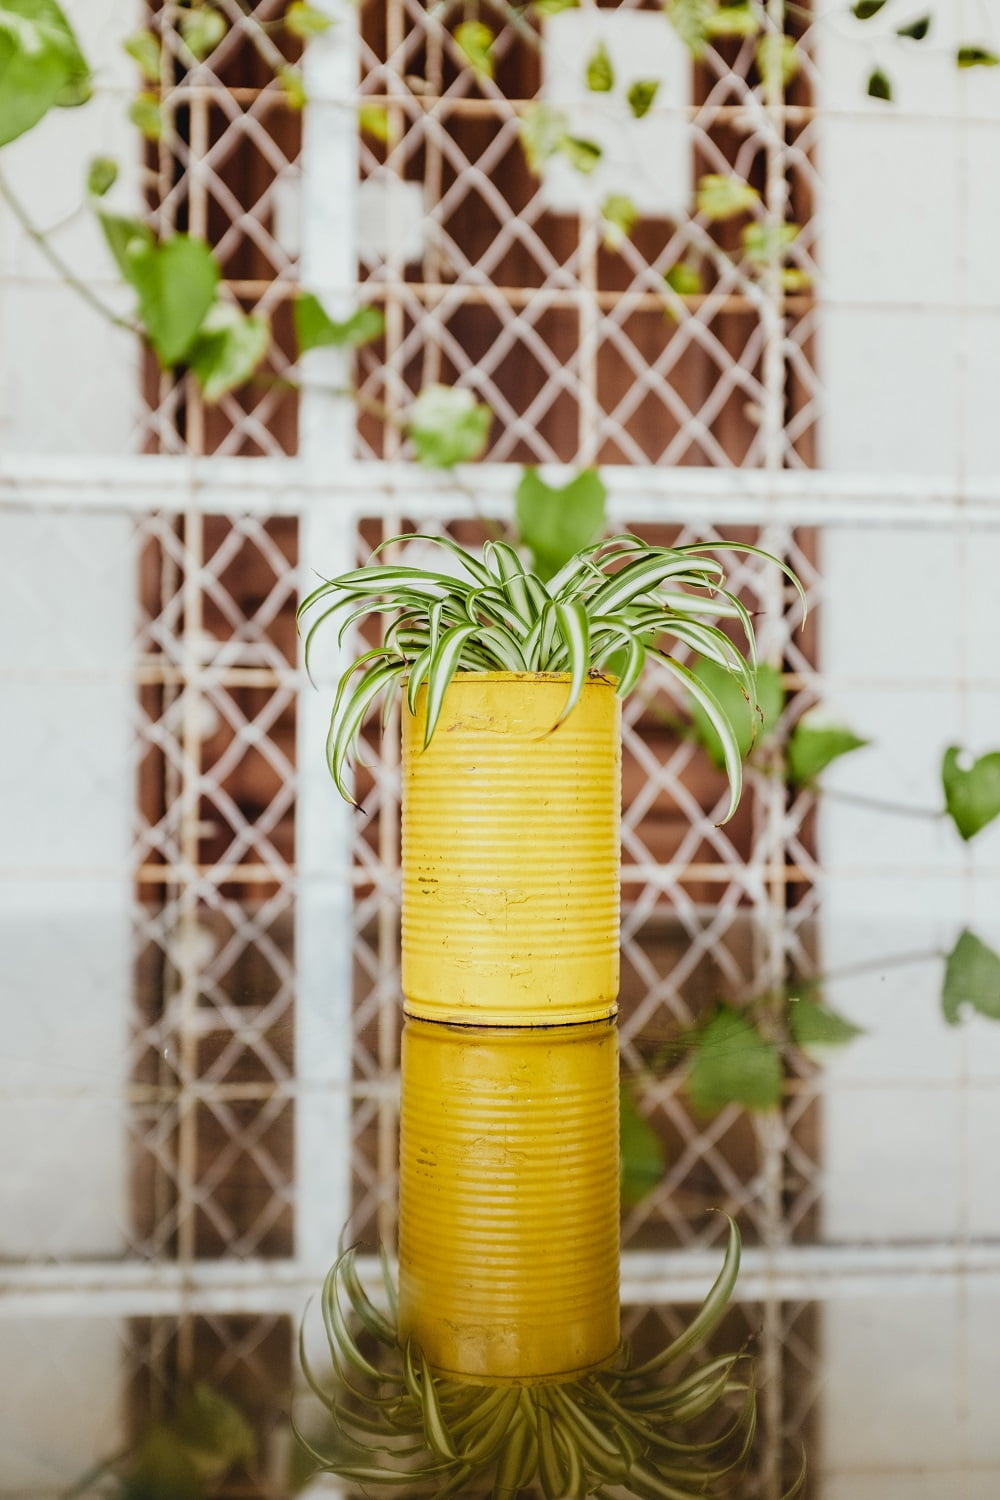 Plant a Garden for Your Kitchen